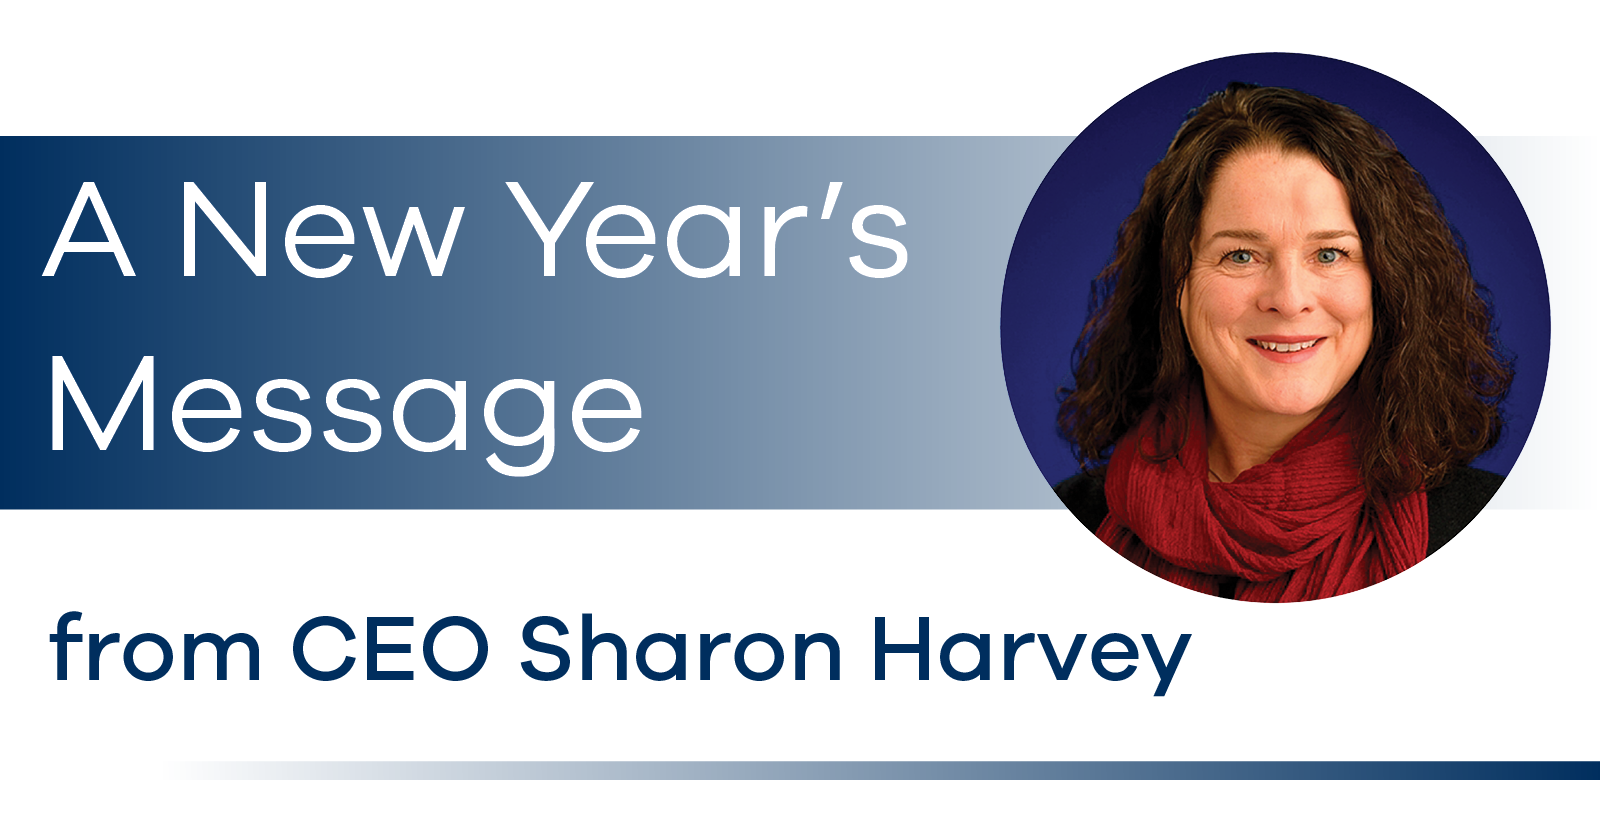 A New Year's Message from CEO Sharon Harvey